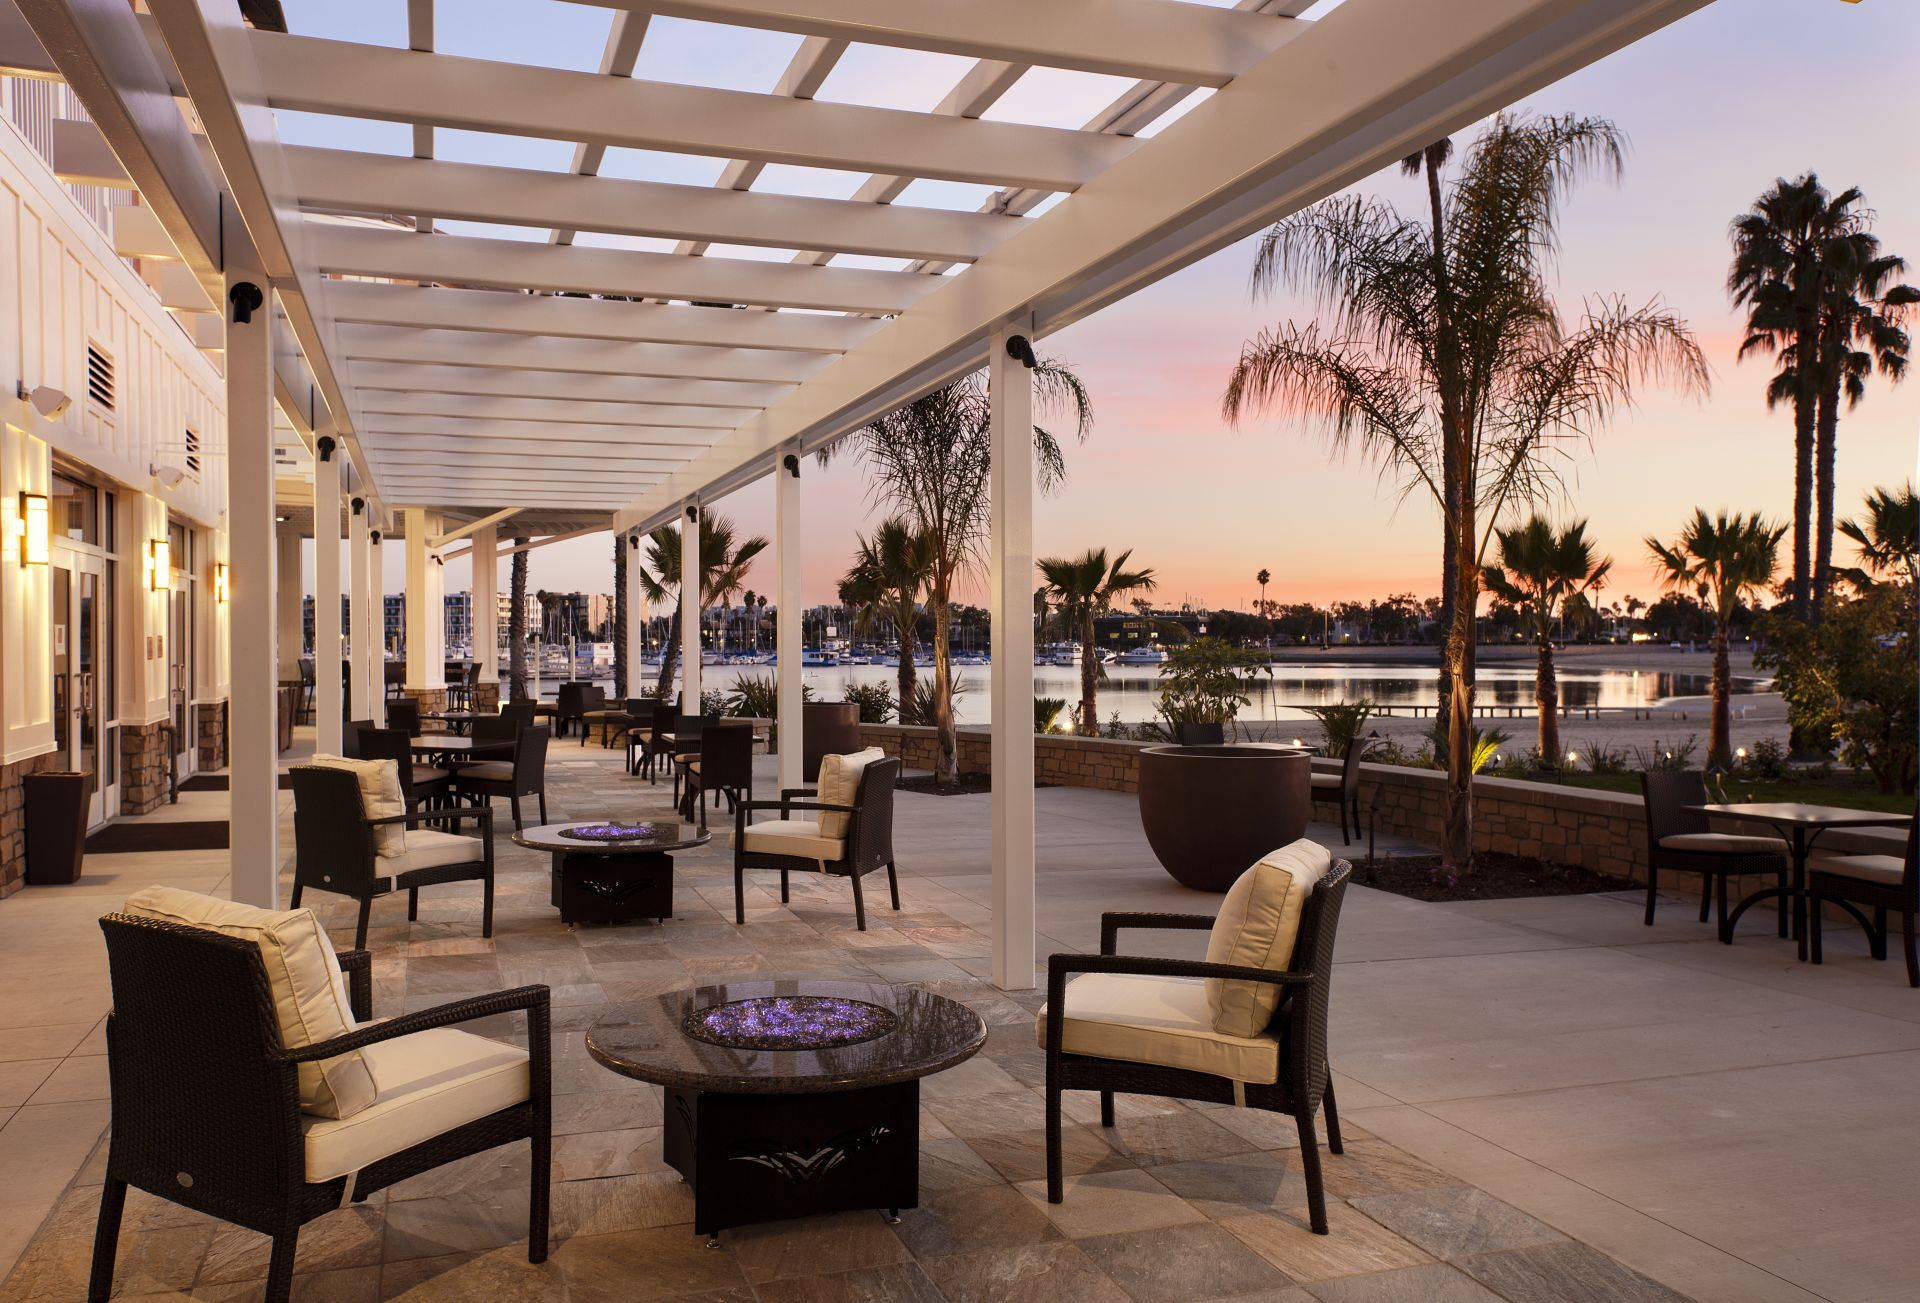 Toast Marina Del Rey S 50th Birthday With Drink Specials On The Water Los Angeles Magazine